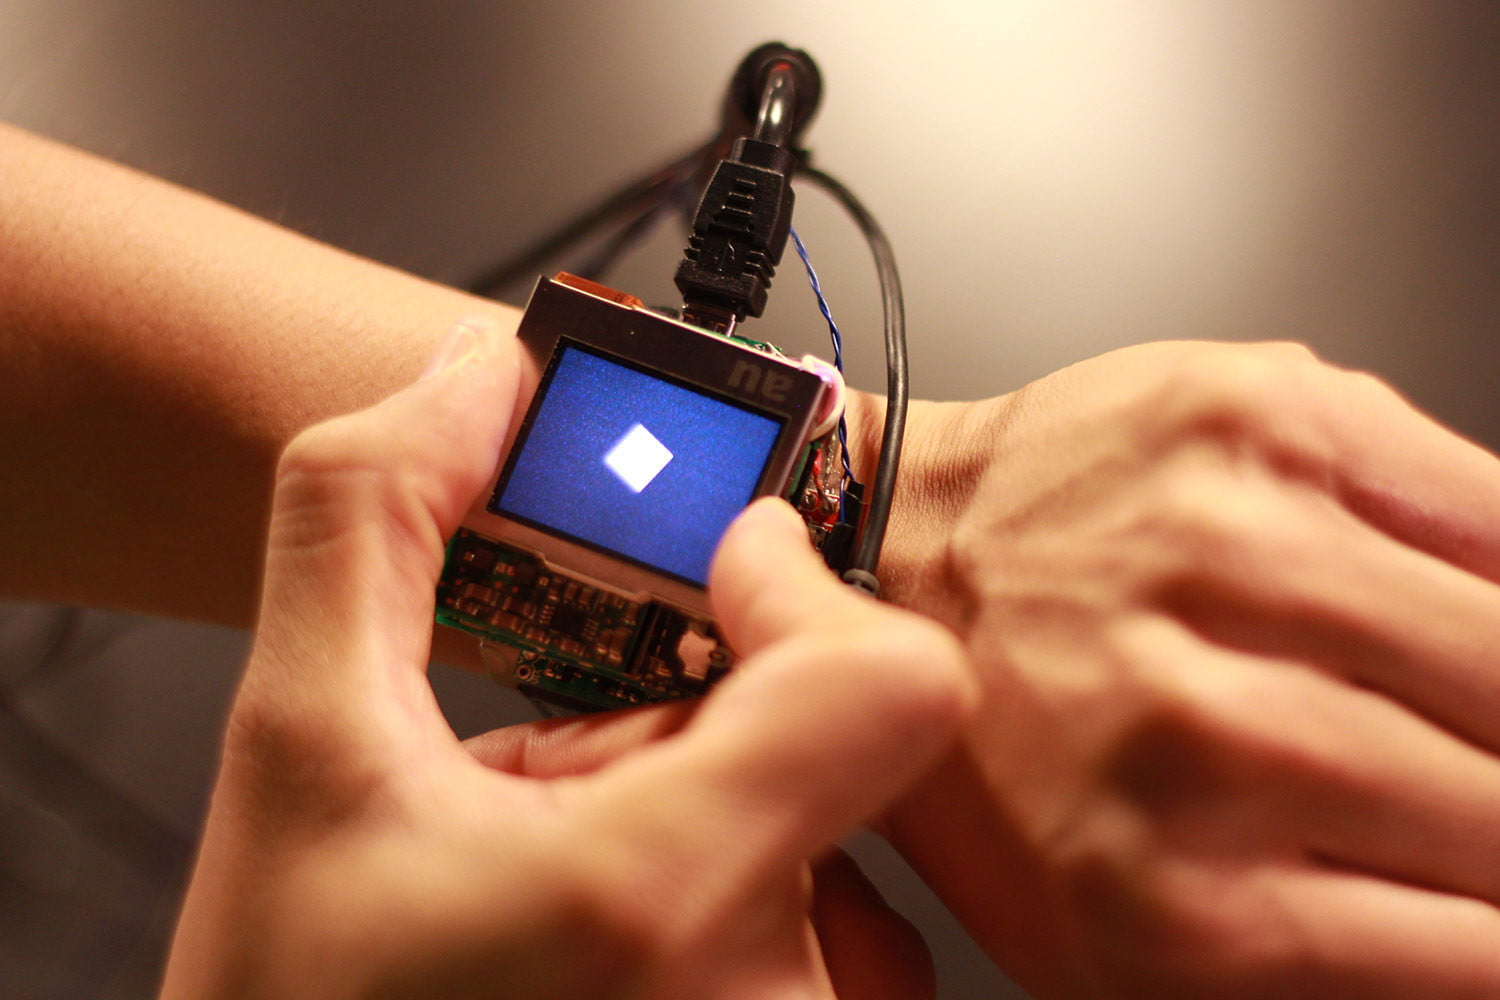 carnegie mellon research on smartwatch features prototype 007